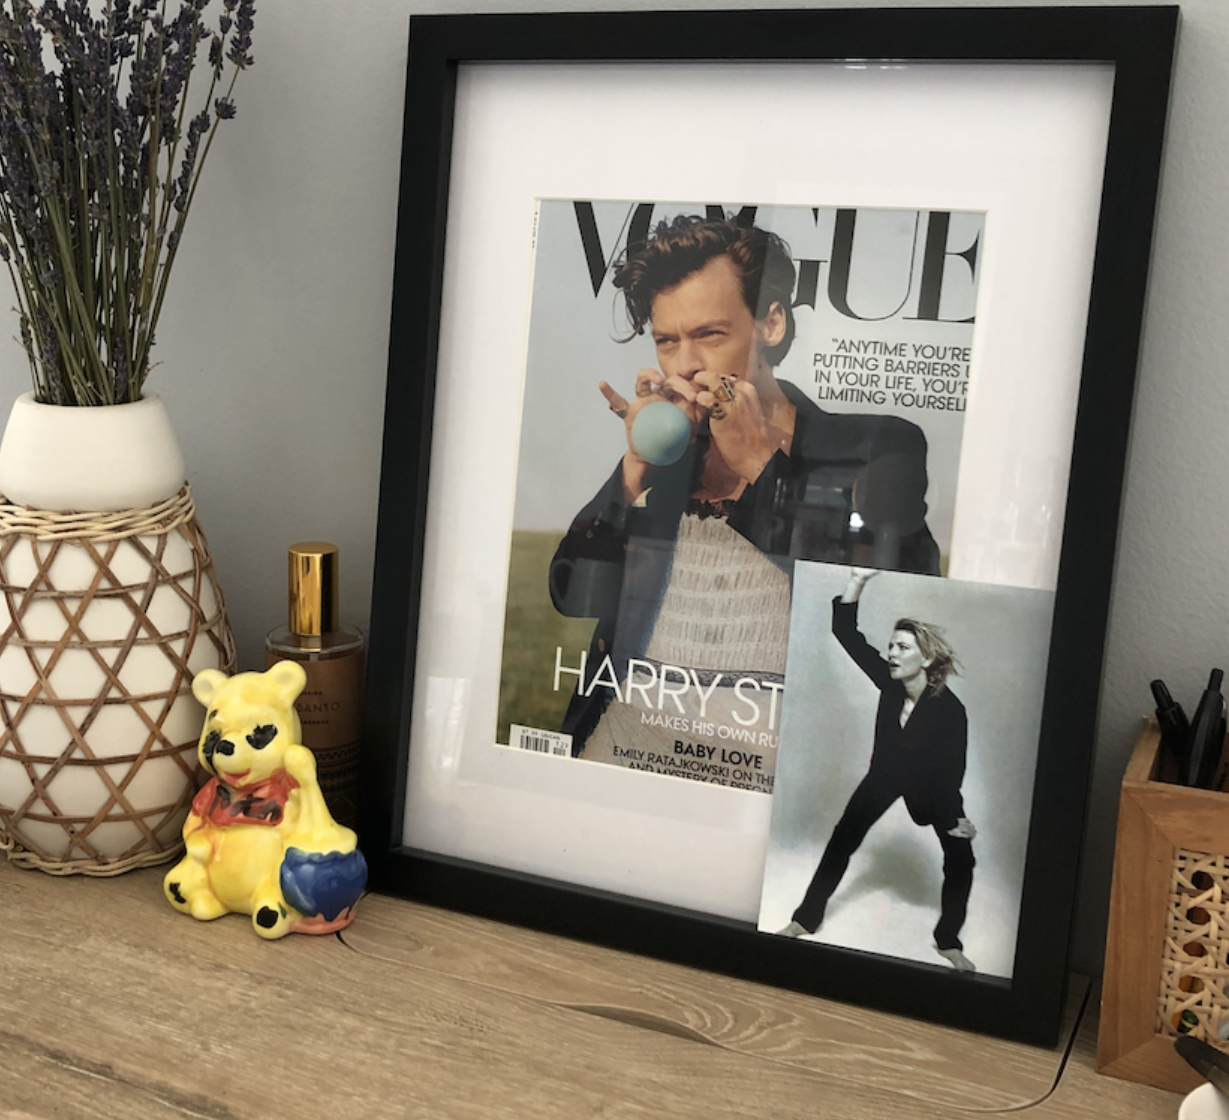 Harry Styles's Vogue cover framed on a wooden desk